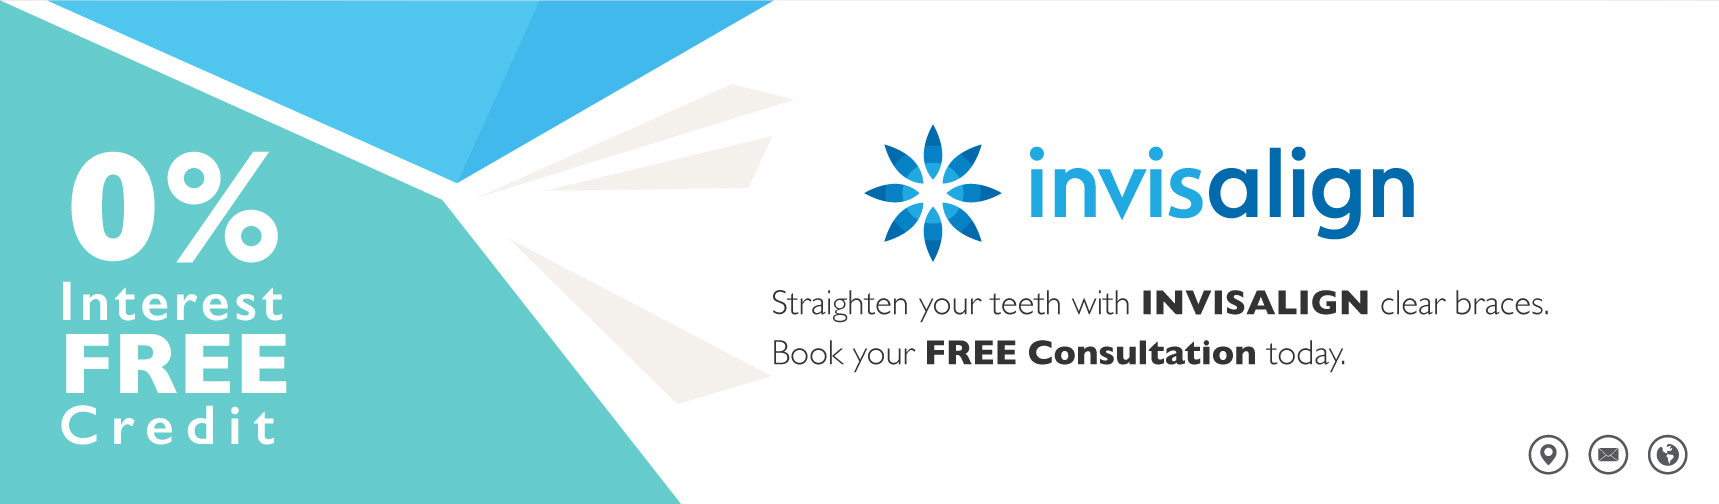 Invisalign Evesham Place Dental Banner